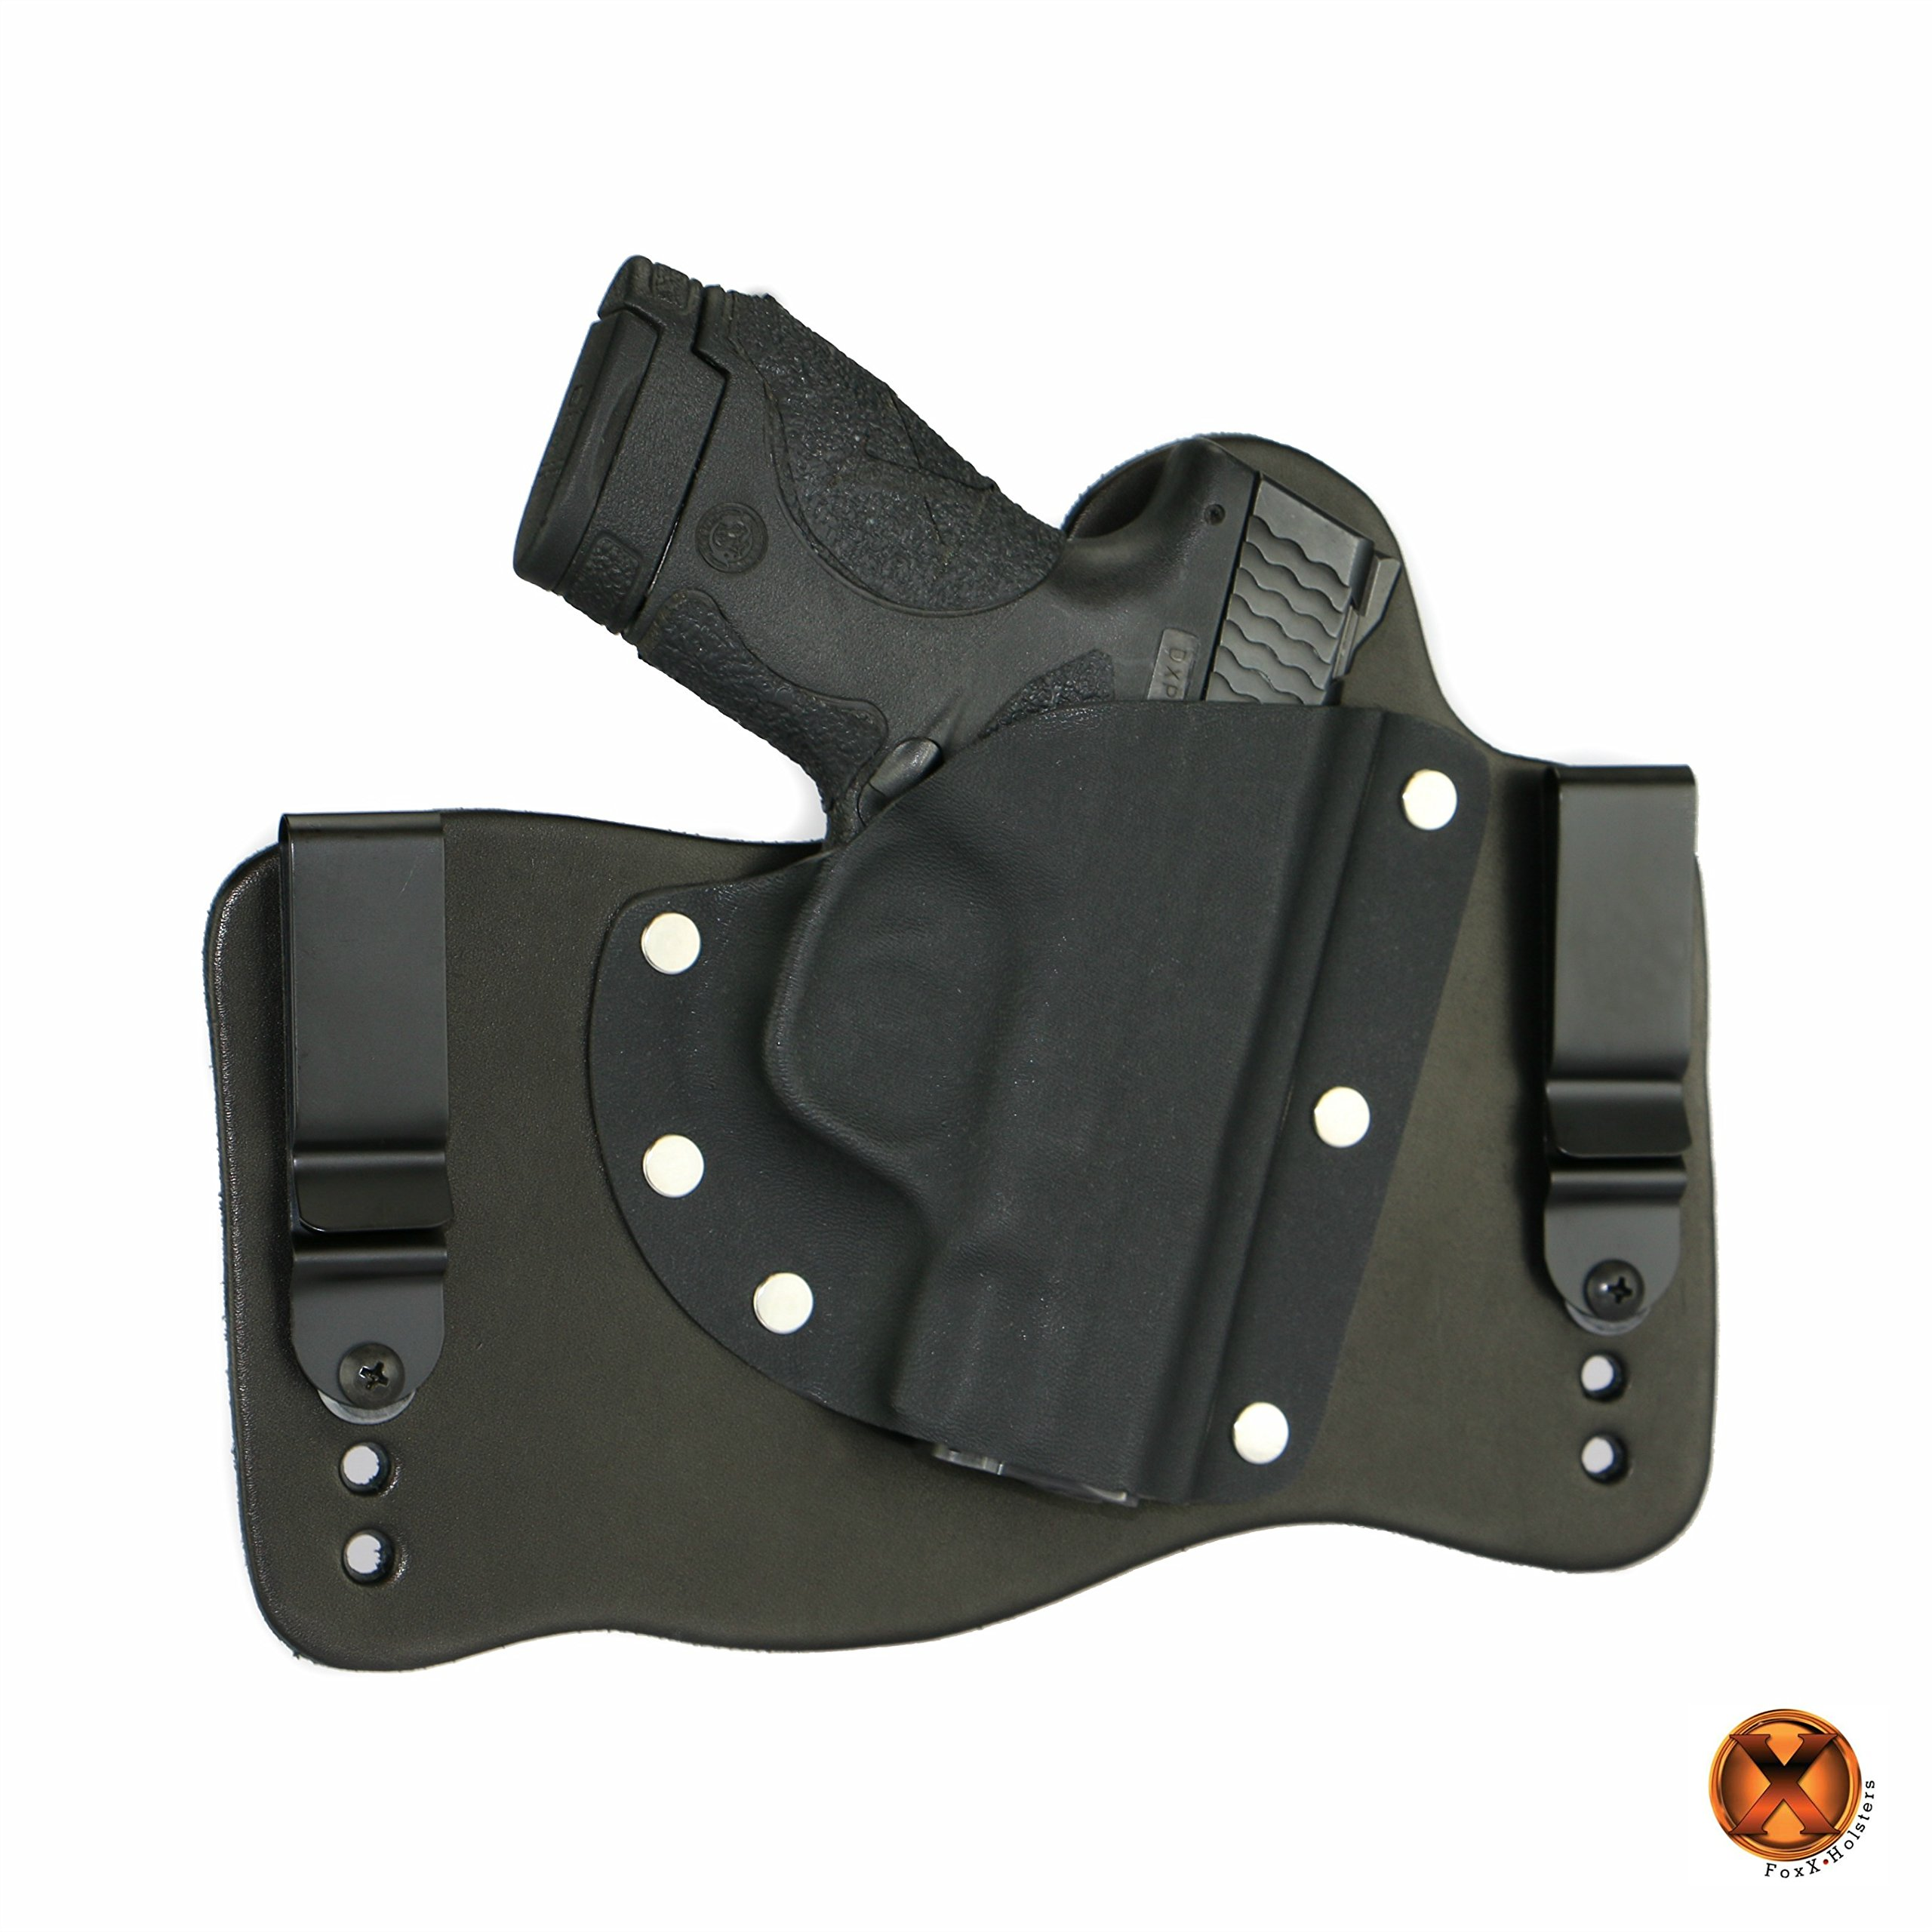 FoxX Holster Smith & Wesson M & P Shield